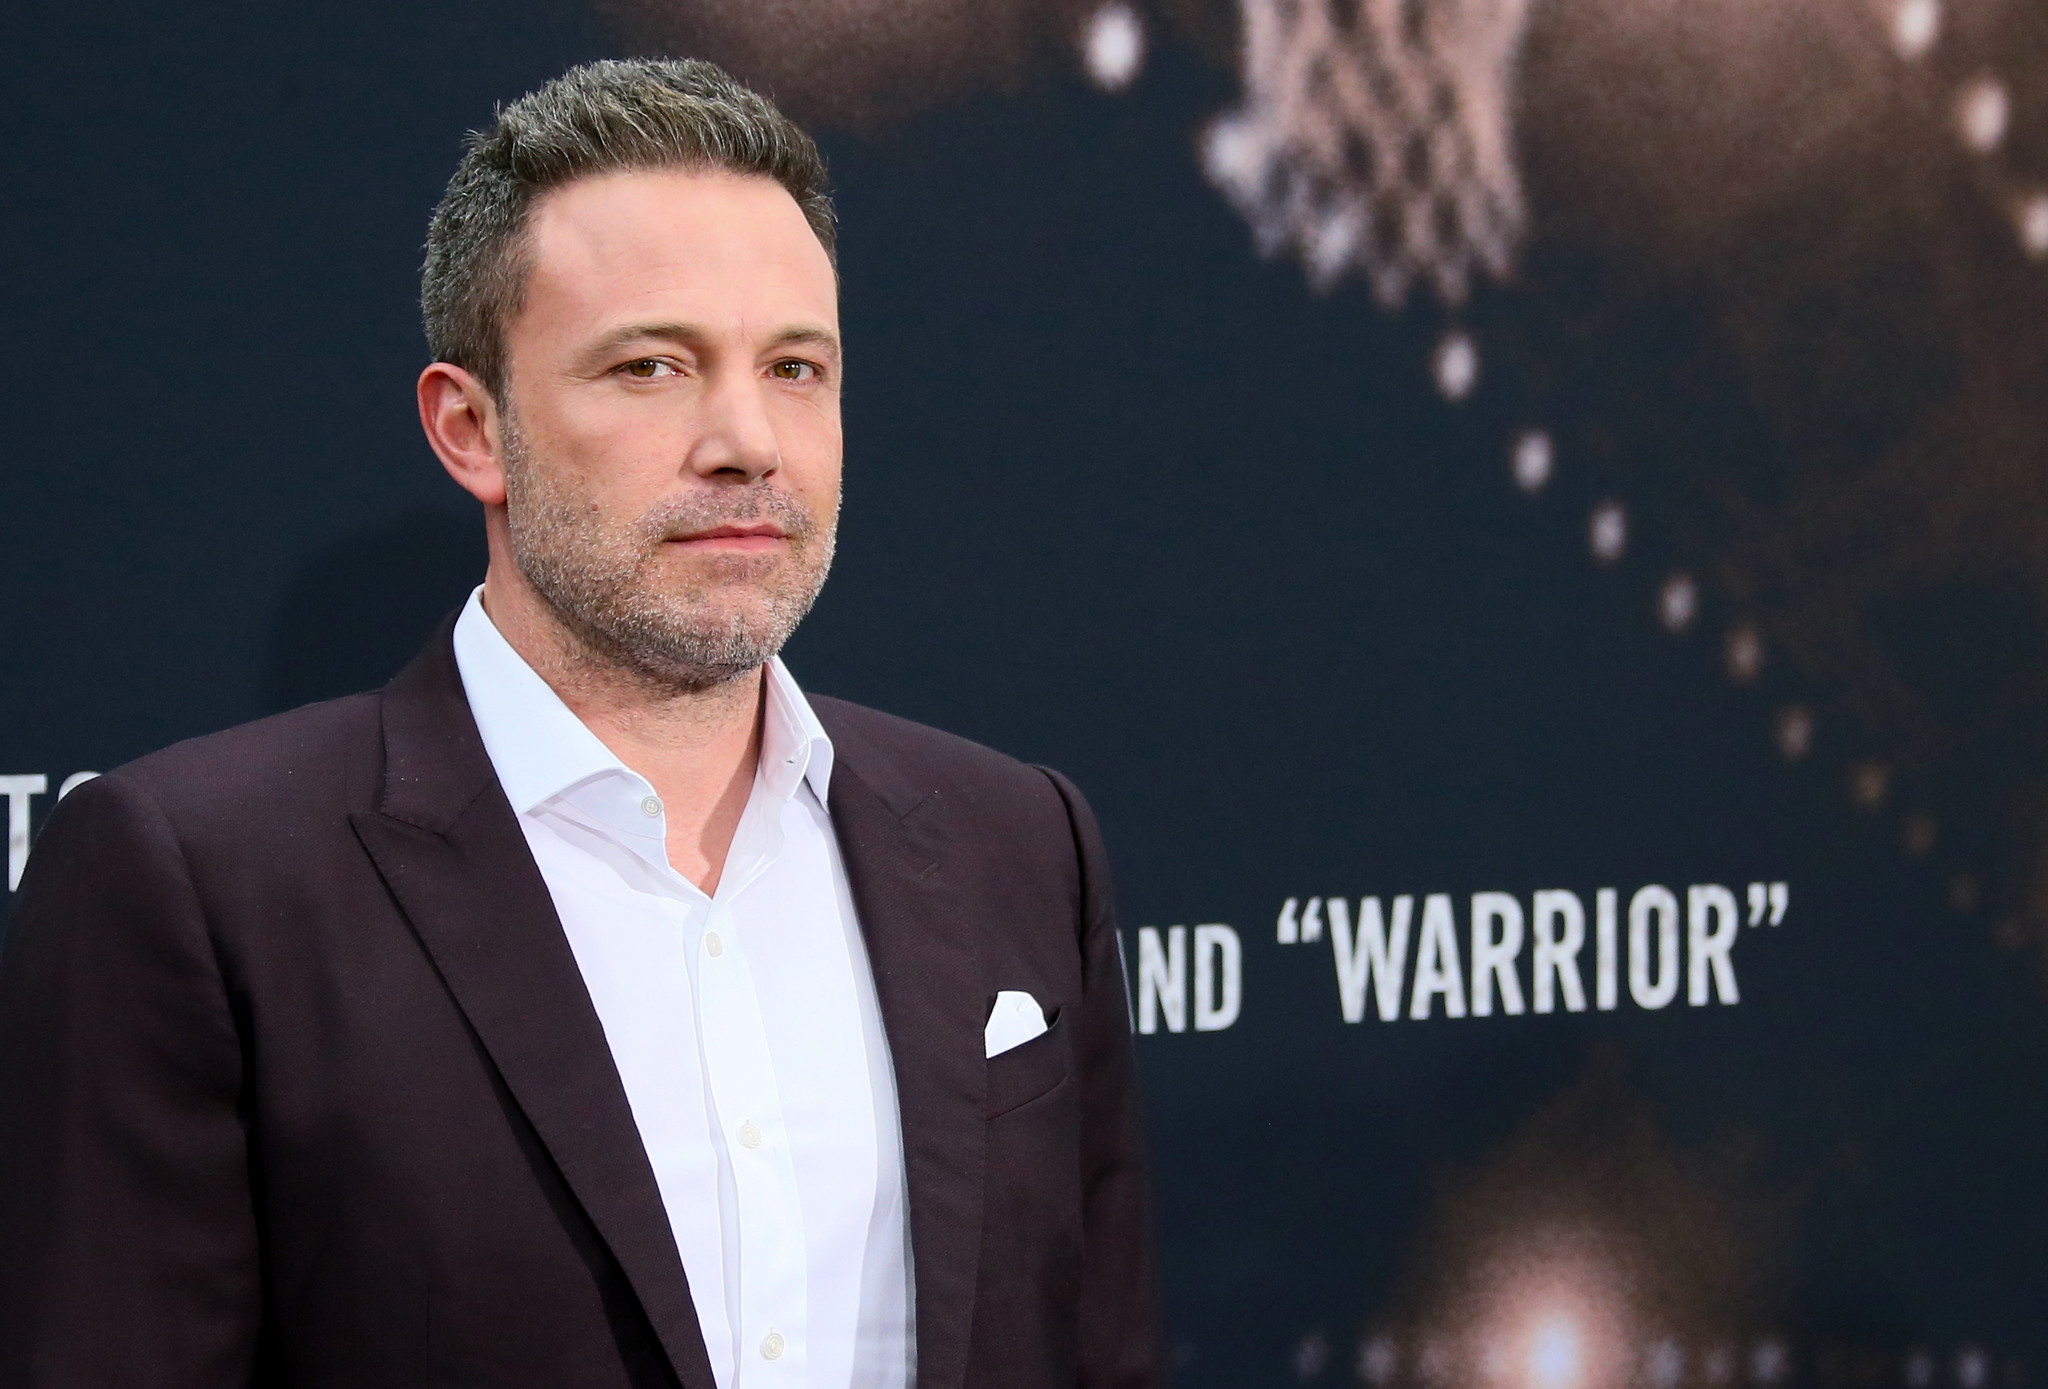 Rose McGowan claims Ben Affleck was 'part of the cover up of my rape'